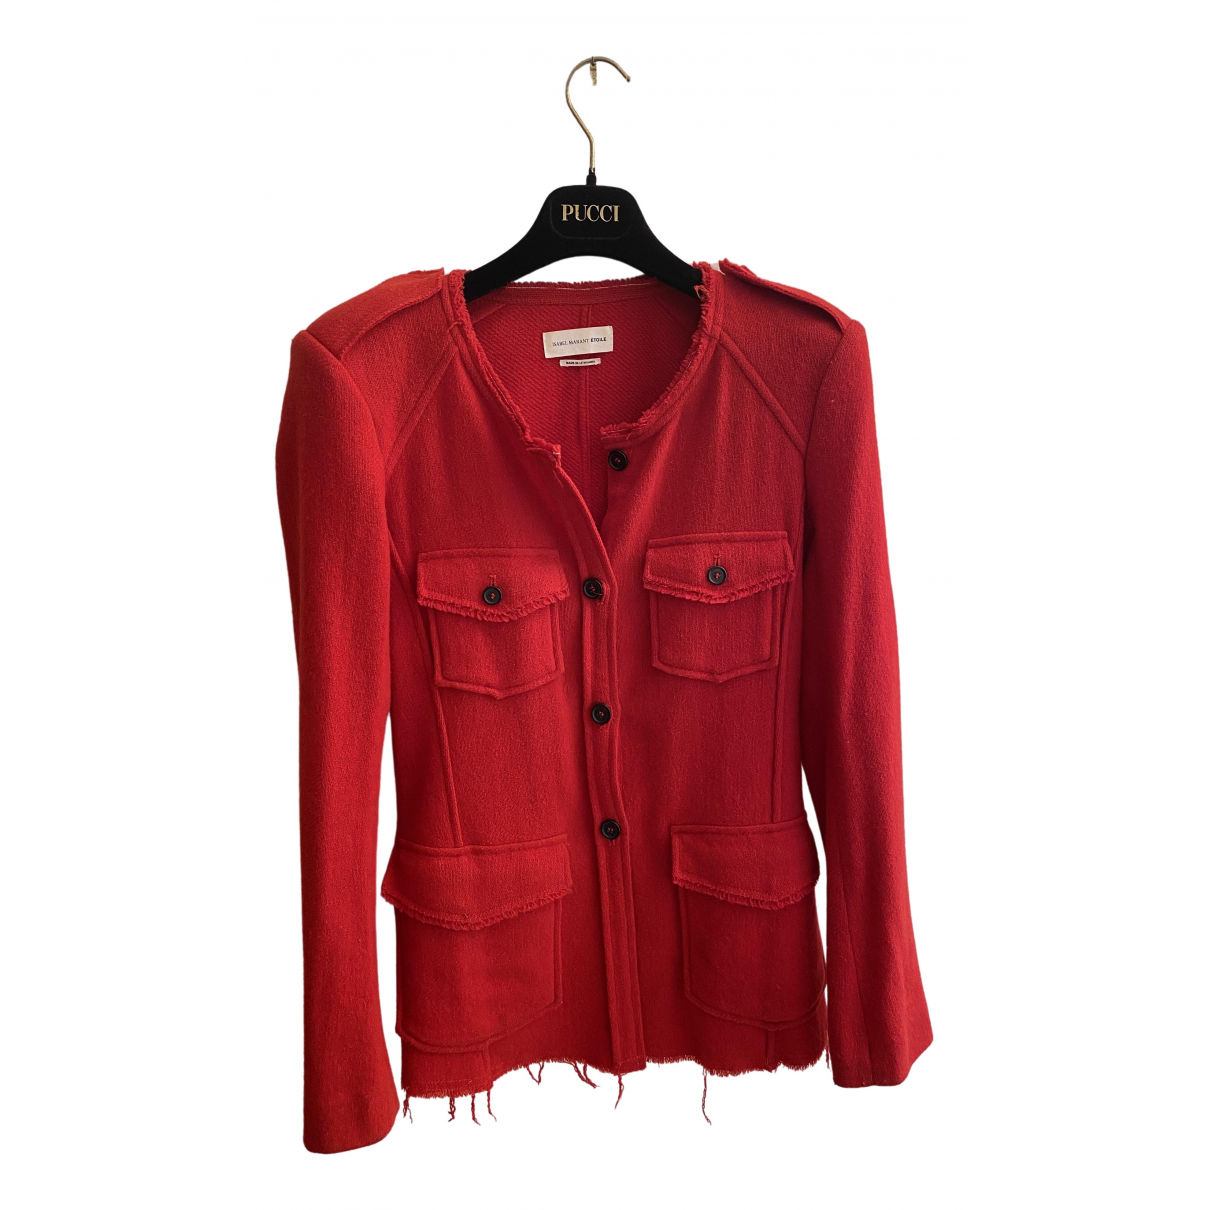 Isabel Marant Etoile \N Red Wool jacket for Women 36 FR